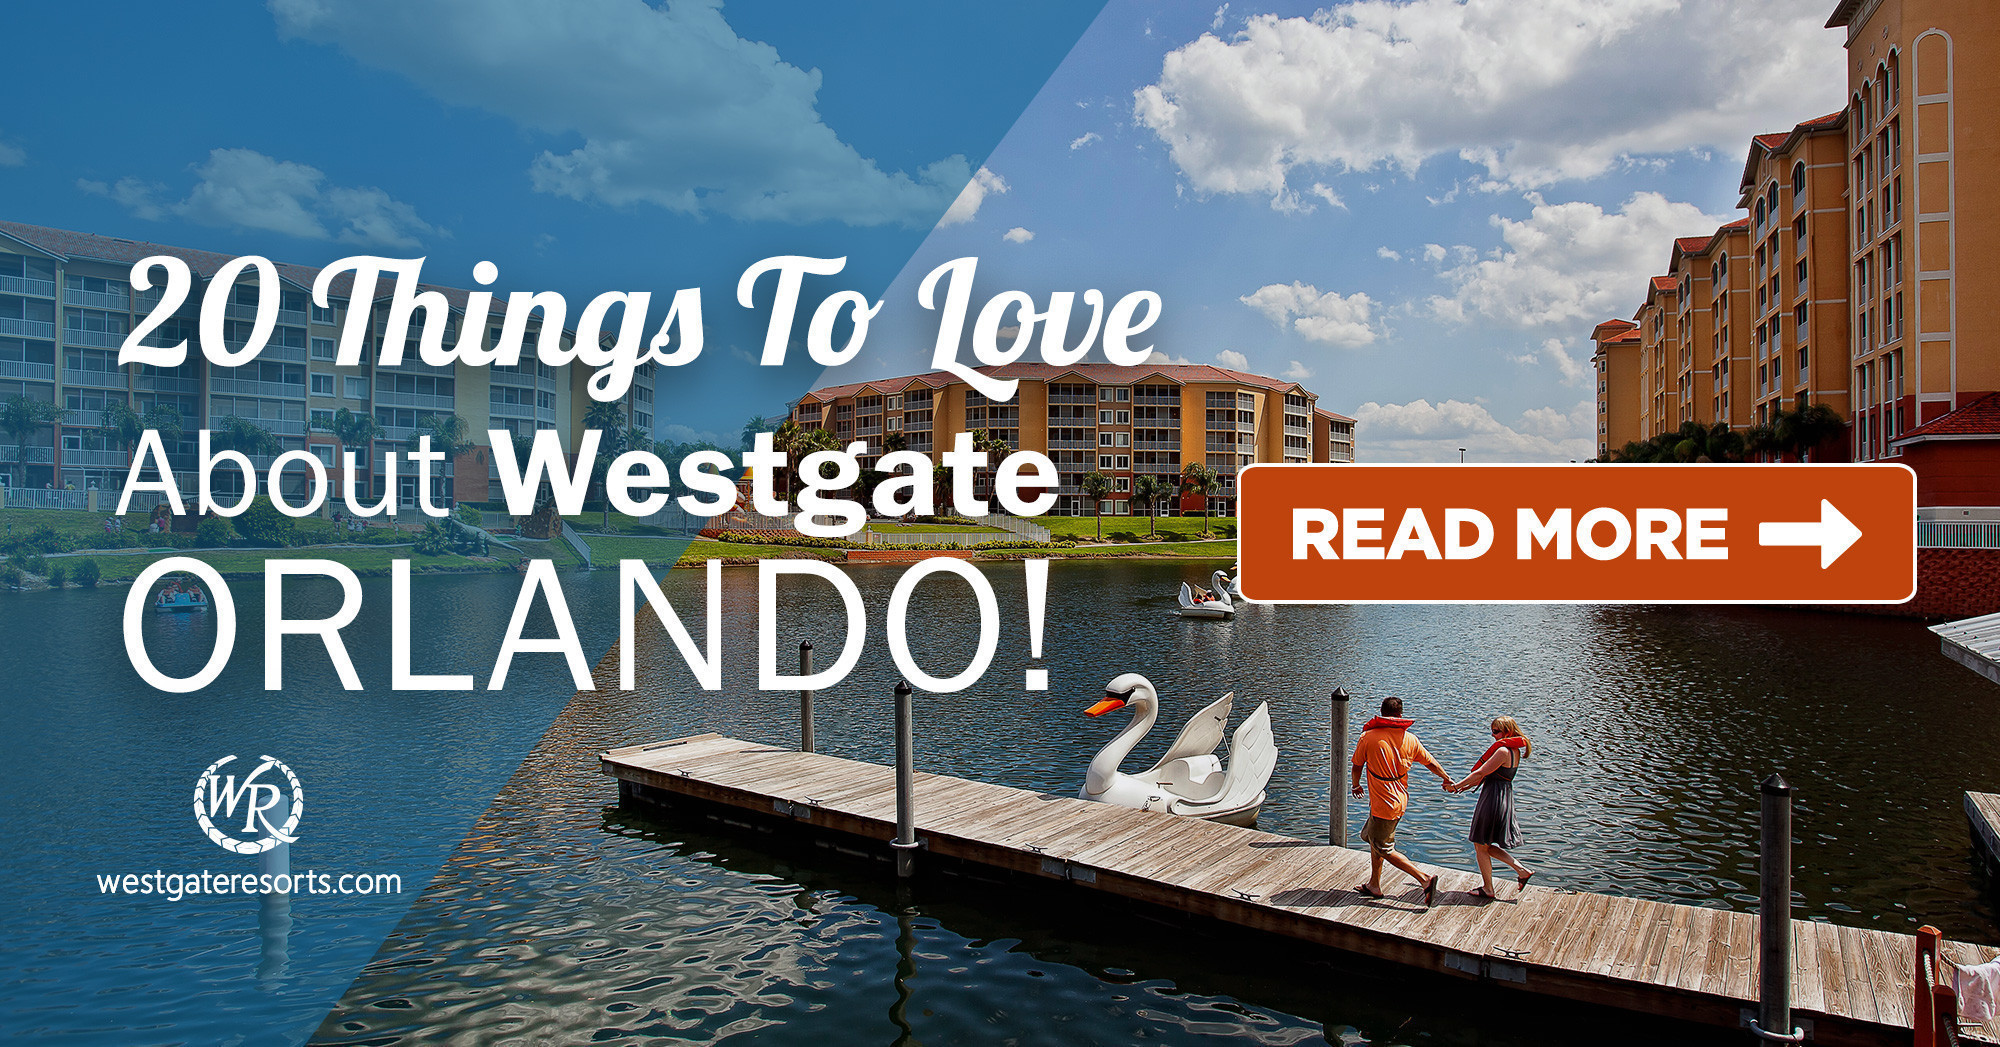 20 Things To Love About Westgate Orlando!